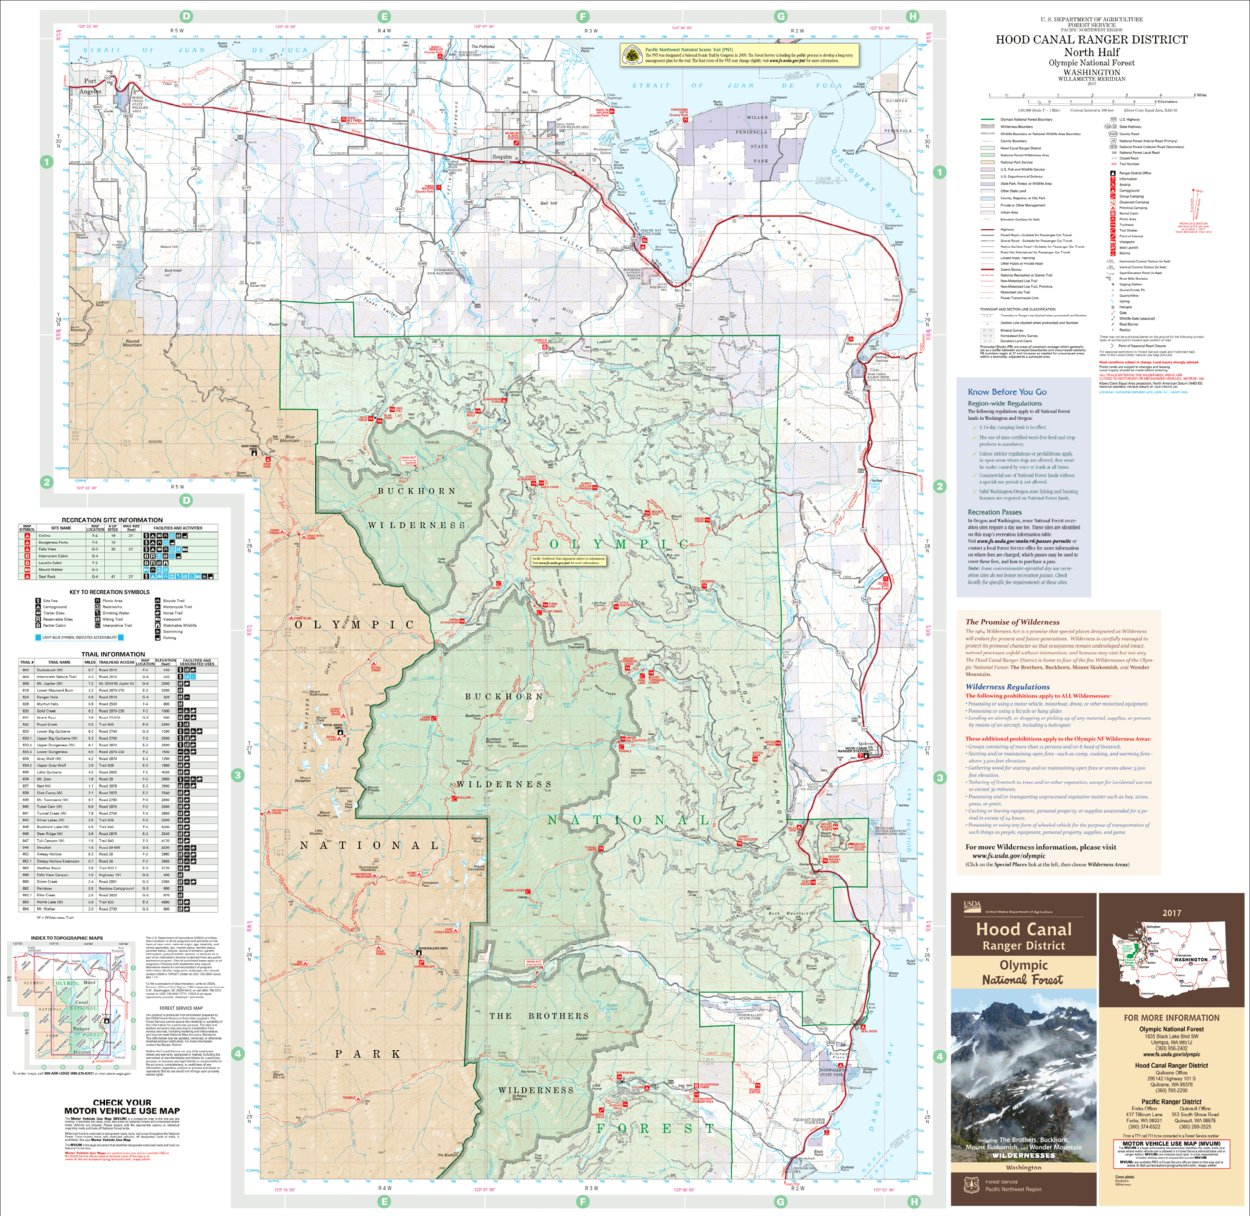 Hood Canal Ranger District Map North - US Forest Service R6 - Avenza ...